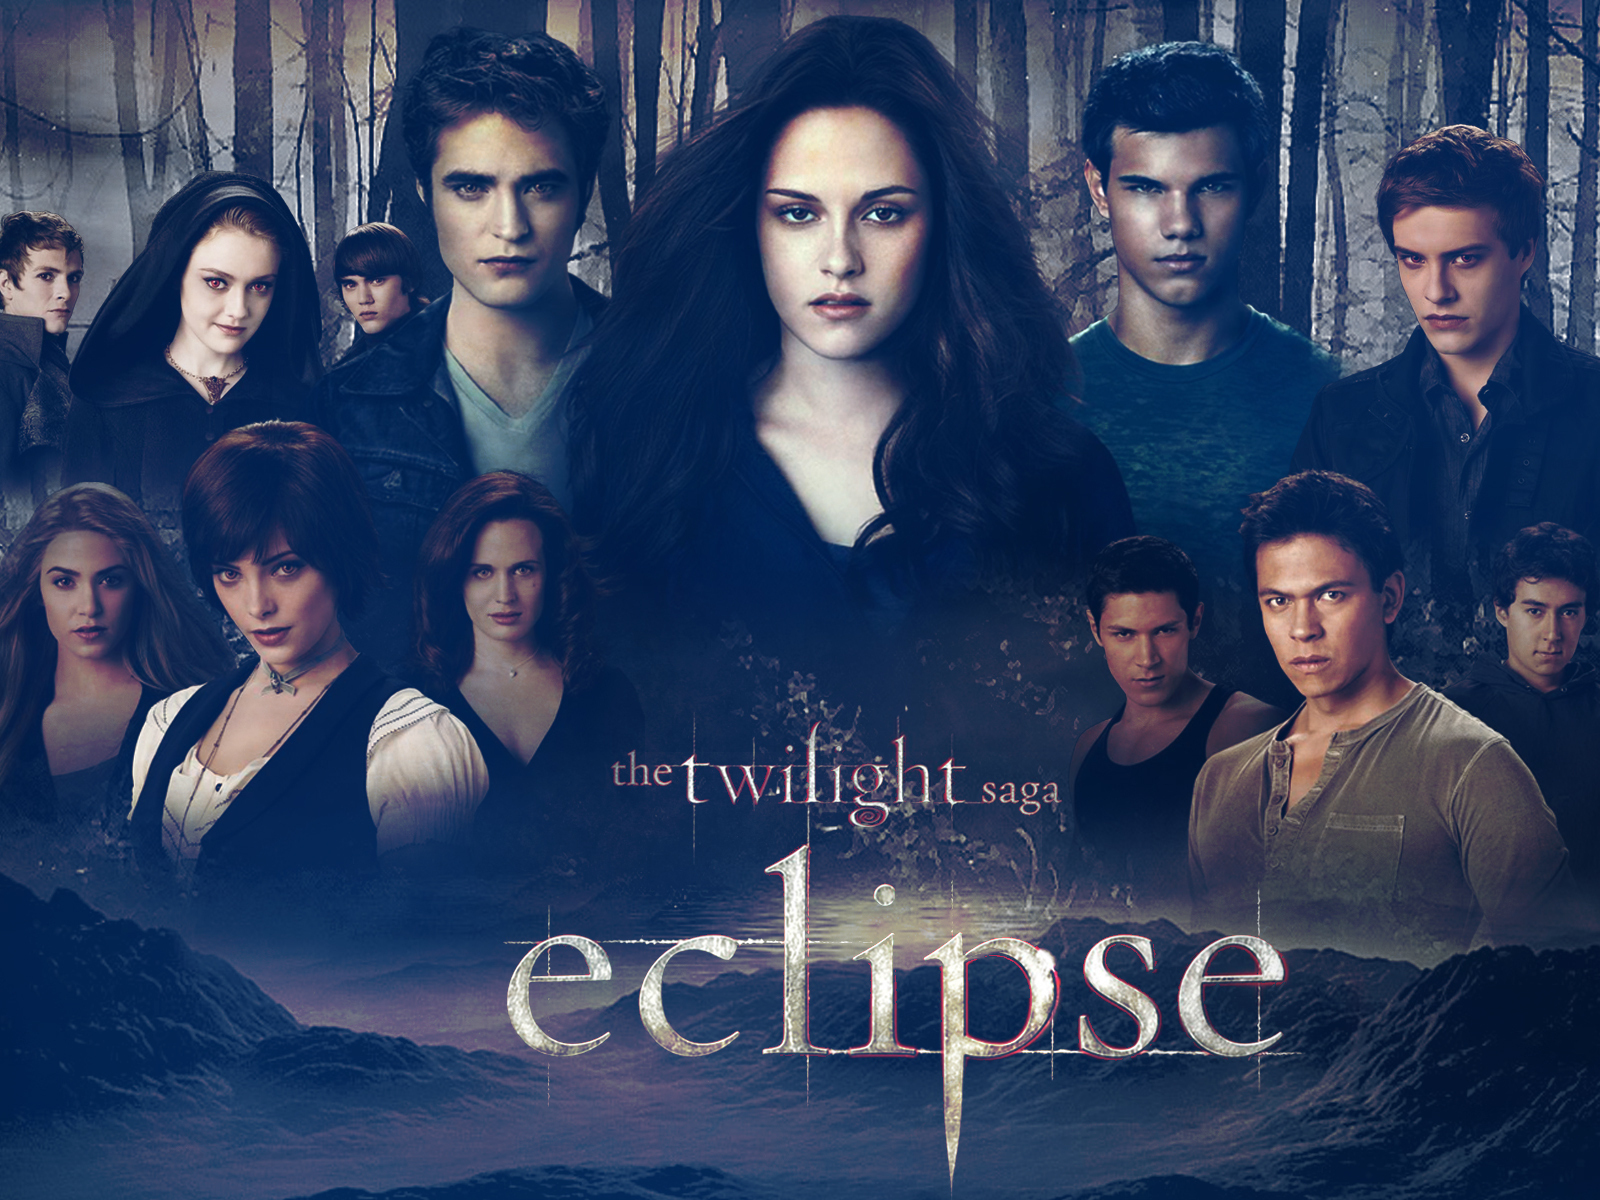 twilight series images eclipse - photo #8